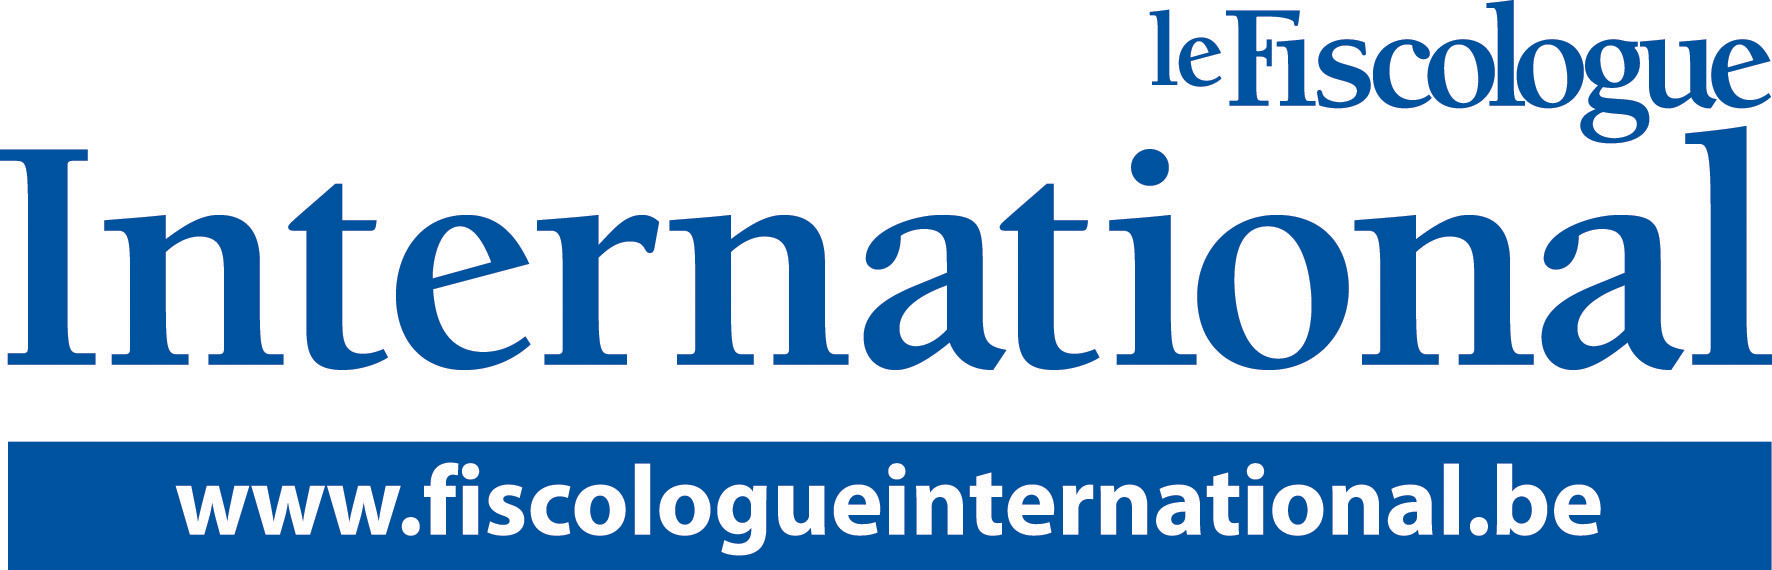 Le Fiscologue International